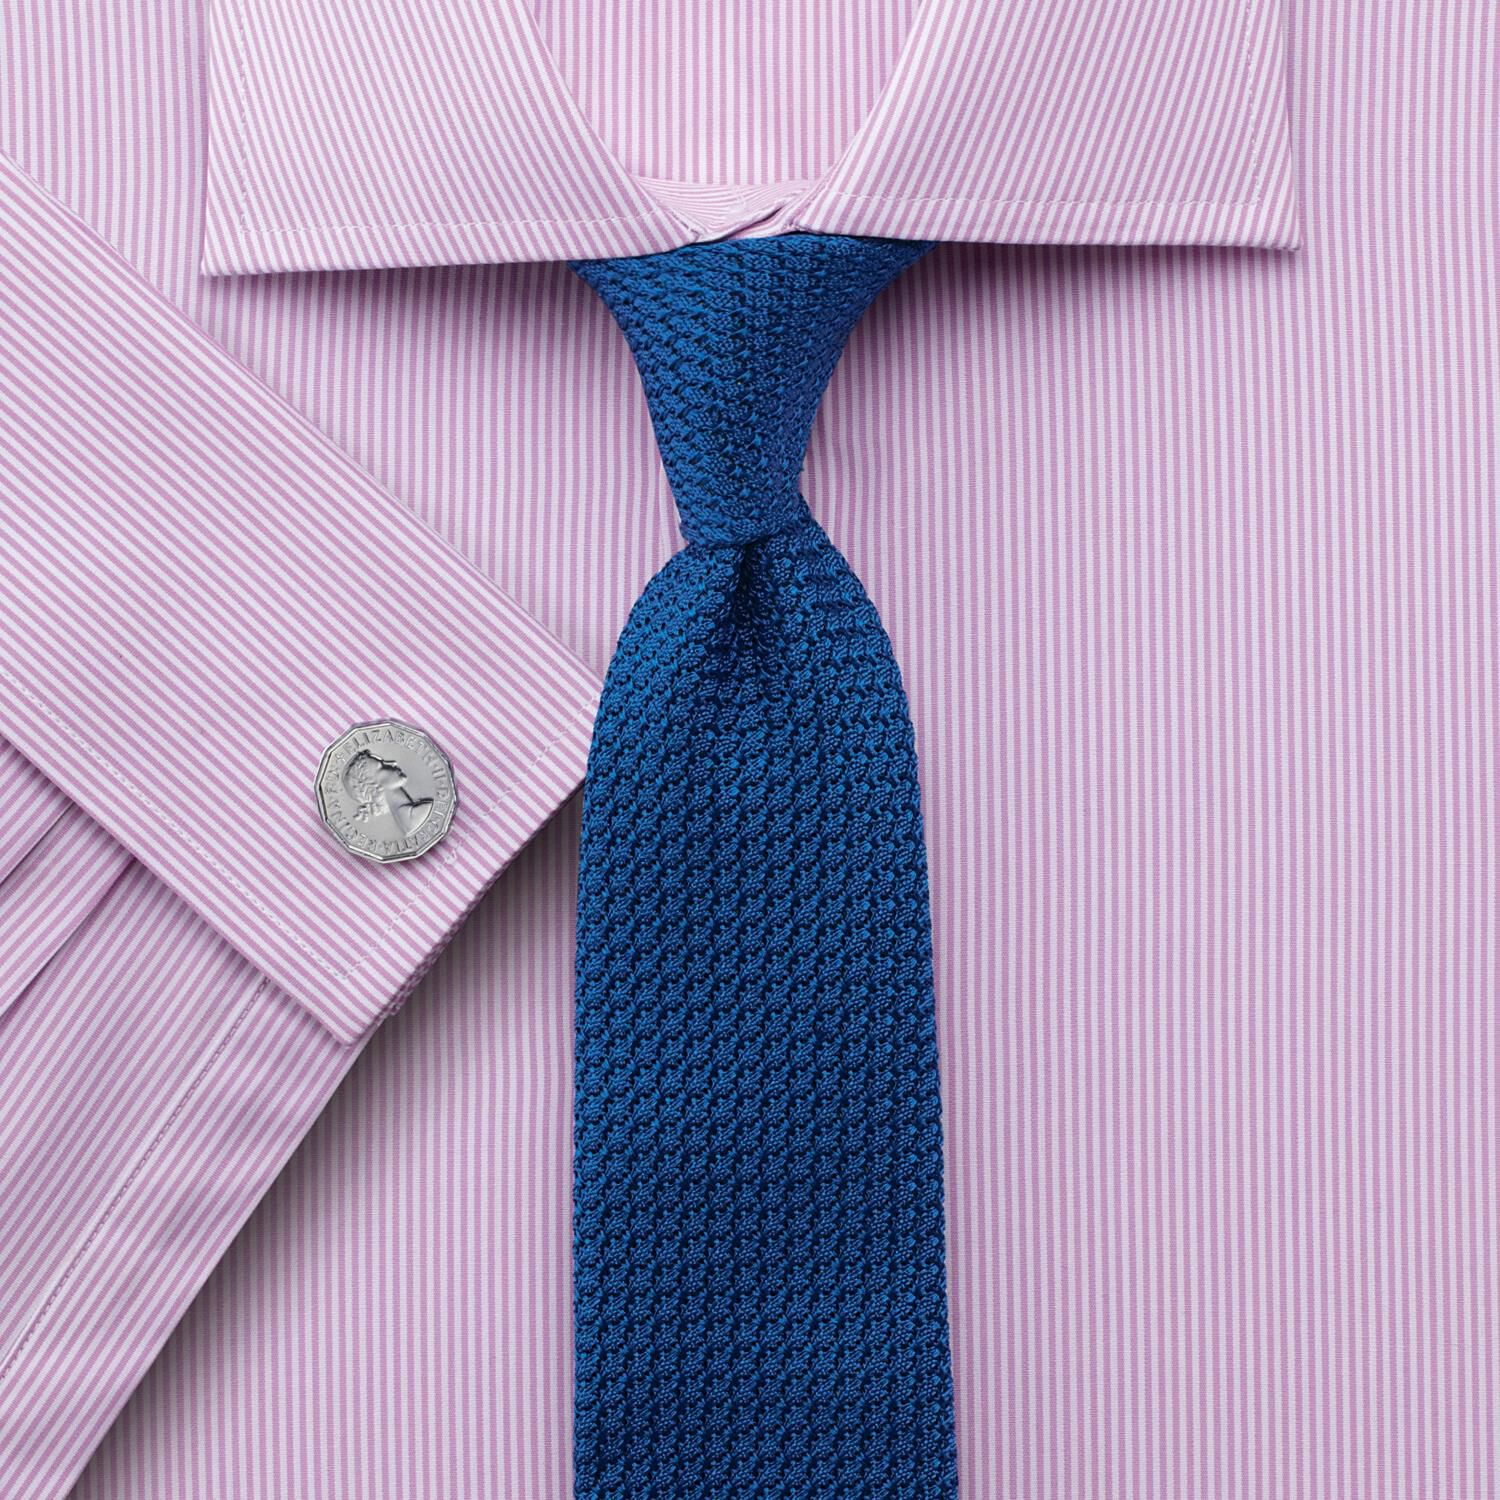 Extra Slim Fit Semi-Cutaway Collar Egyptian Cotton Bengal Stripe Pink Formal Shirt Double Cuff Size